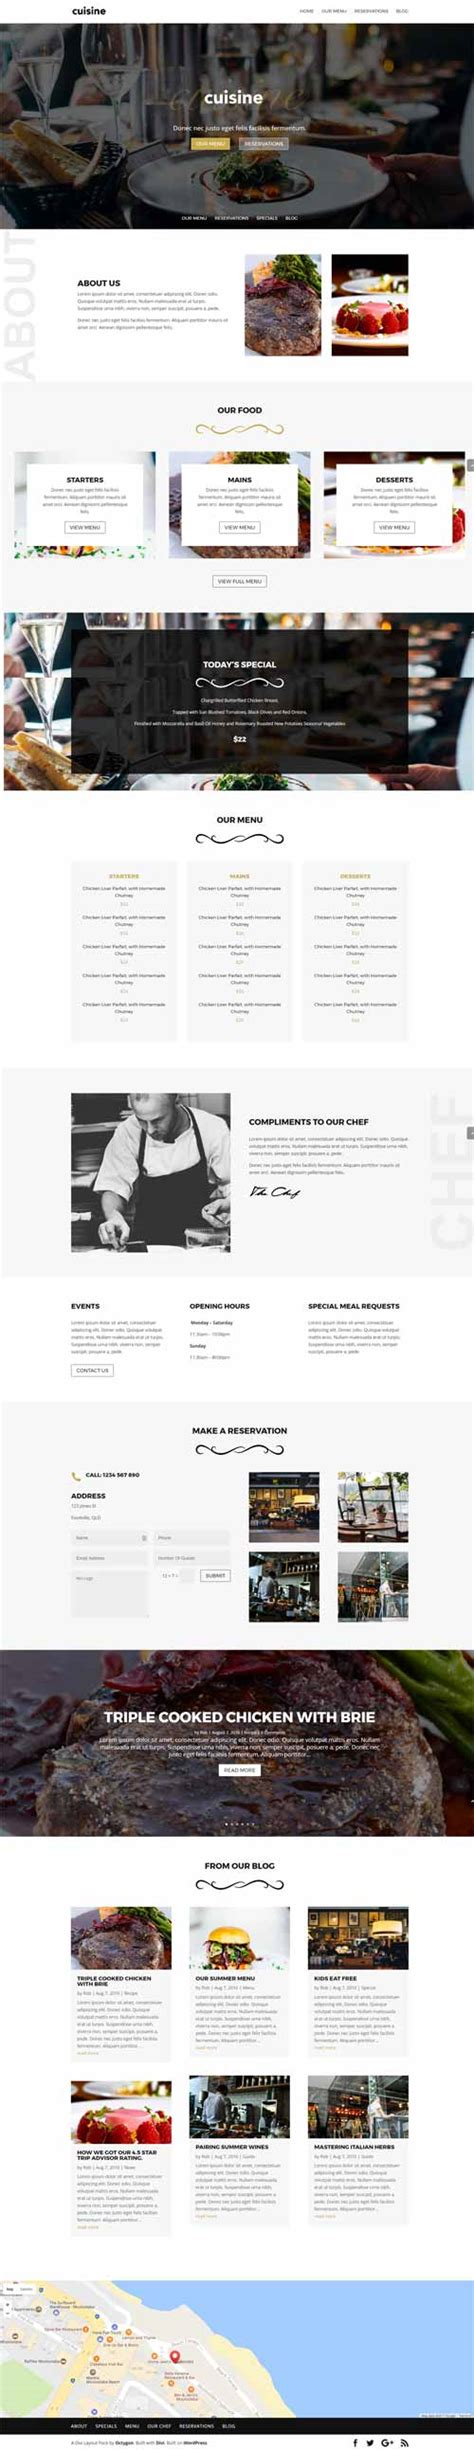 layout of a restaurant review cuisine 1 page restaurant layout divi theme layouts